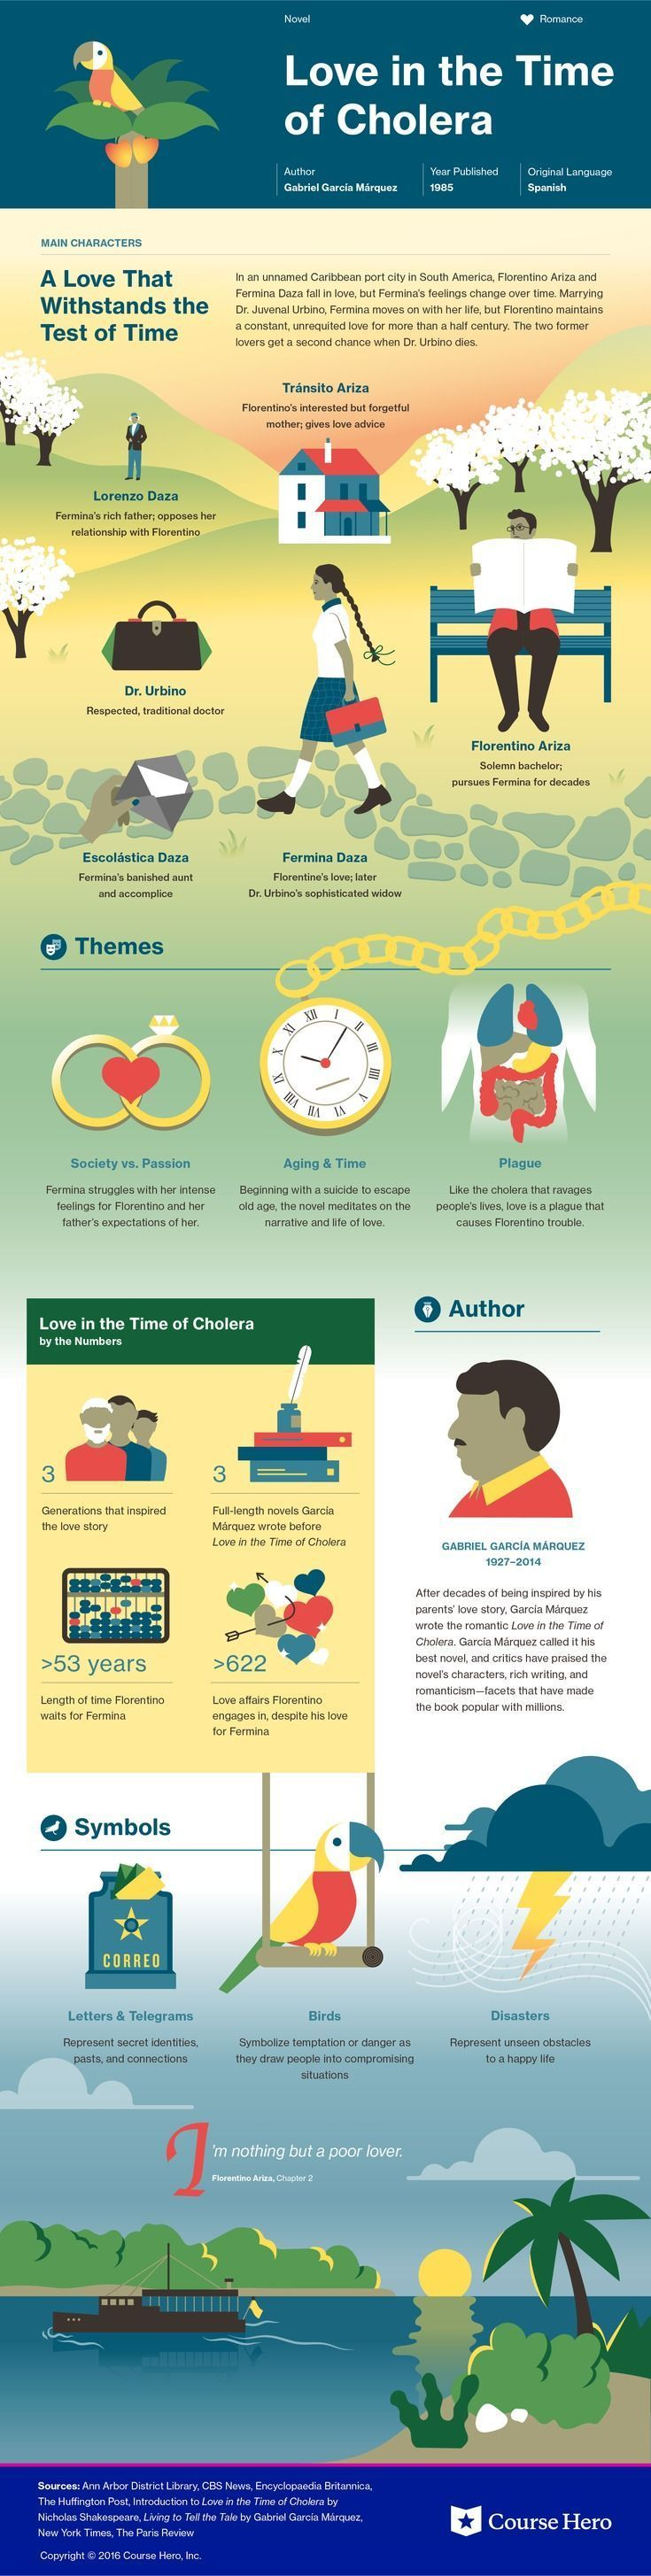 Love in the Time of Cholera infographic   Course Hero